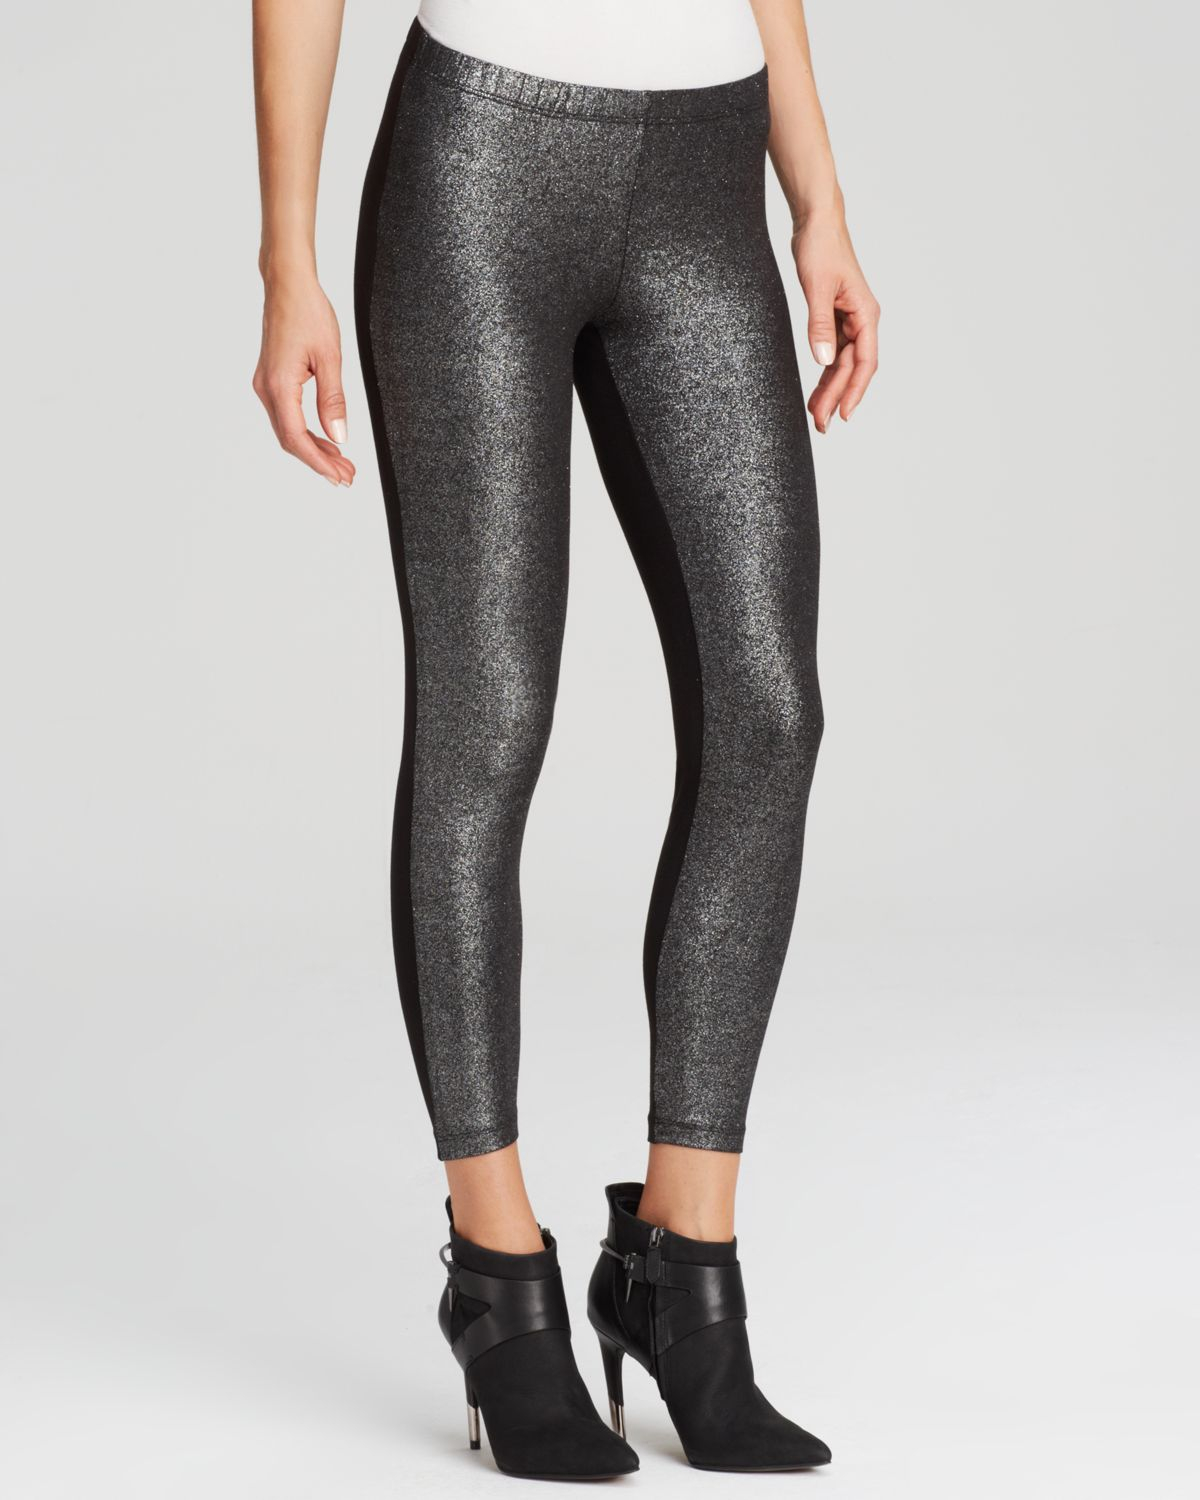 Shop for girls black sparkle leggings online at Target. Free shipping on purchases over $35 and save 5% every day with your Target REDcard.